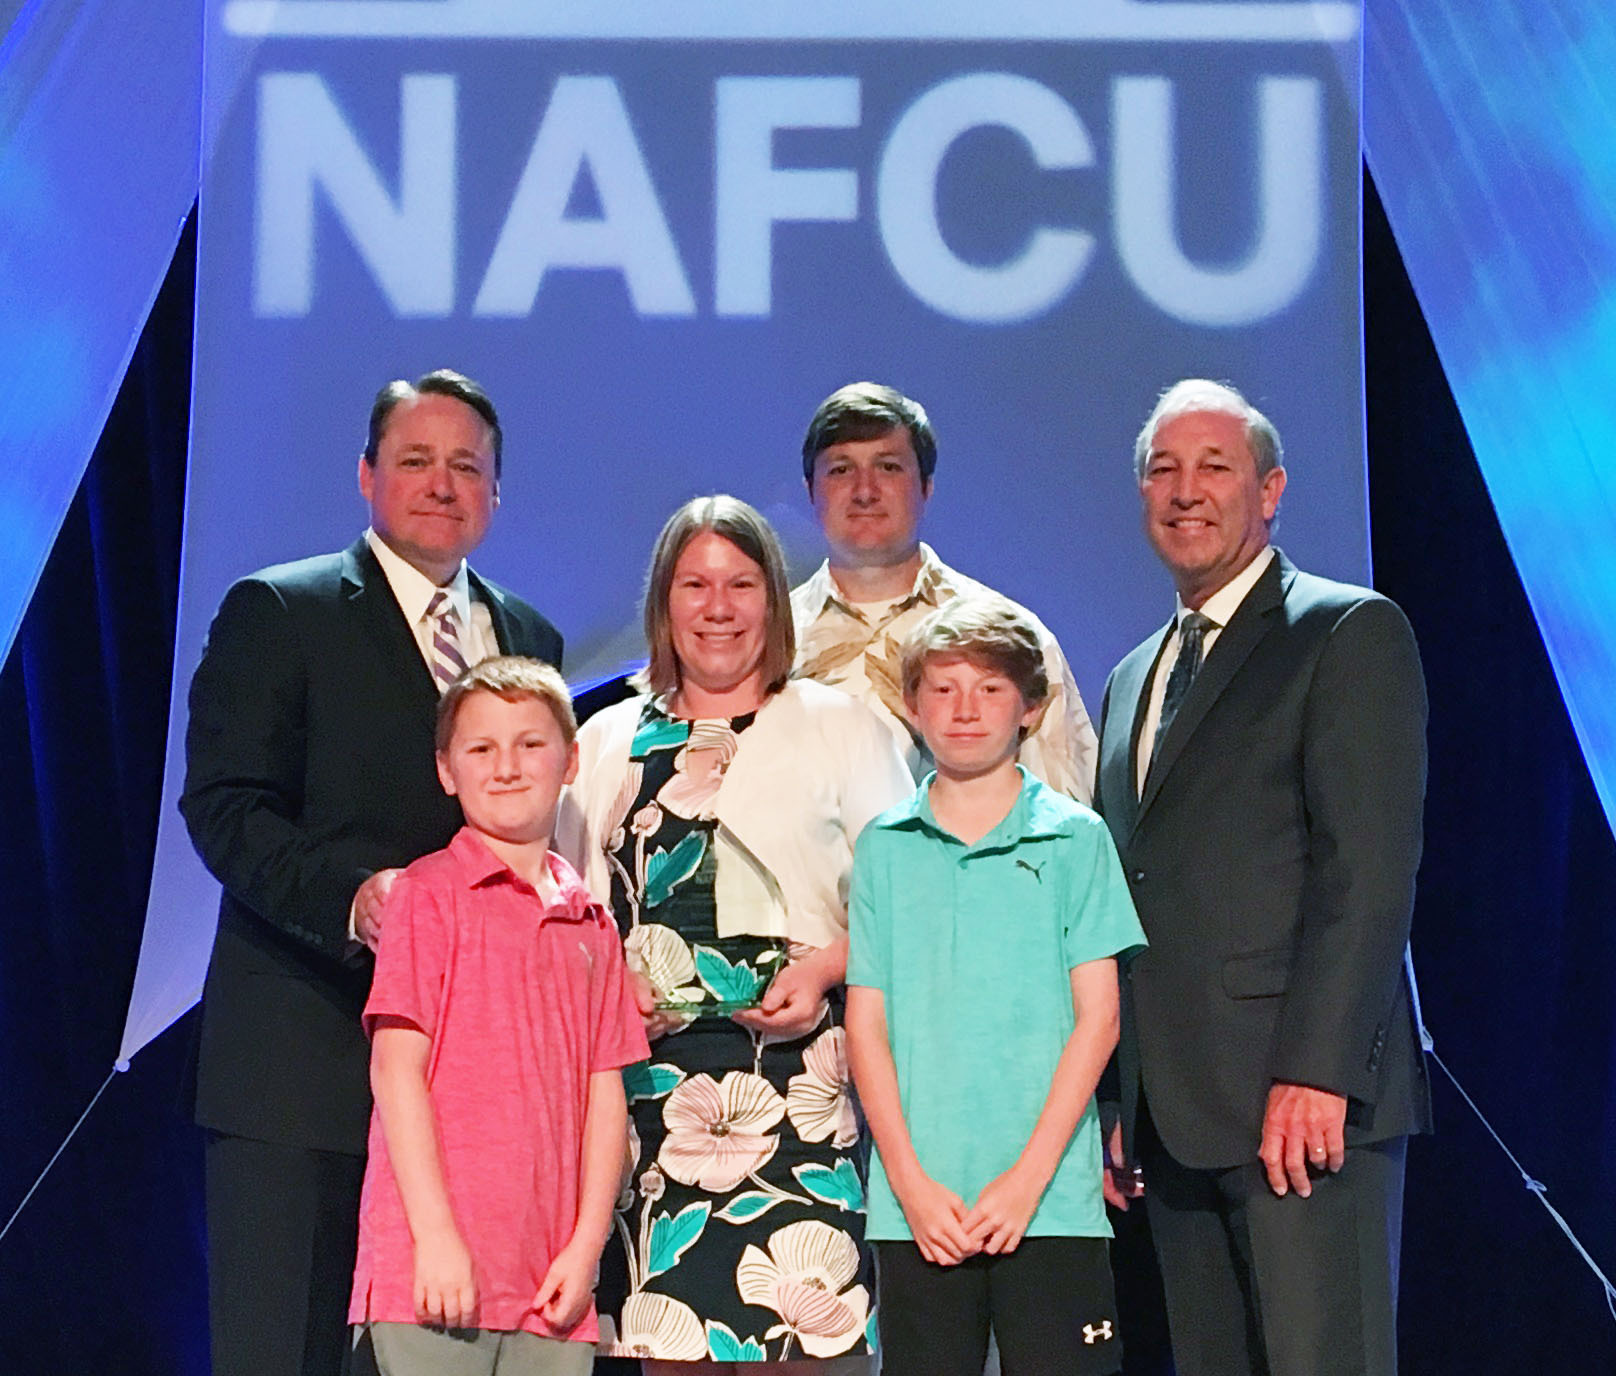 Northwest Federal's Harmonie Taddeo presented with NAFCU's Professional of the Year Award. Left to right: Dan Berger, President and CEO of NAFCU; Harmonie Taddeo and family; Charles A. Rutan NAFCU's Director-at-Large. (Photo: Business Wire)